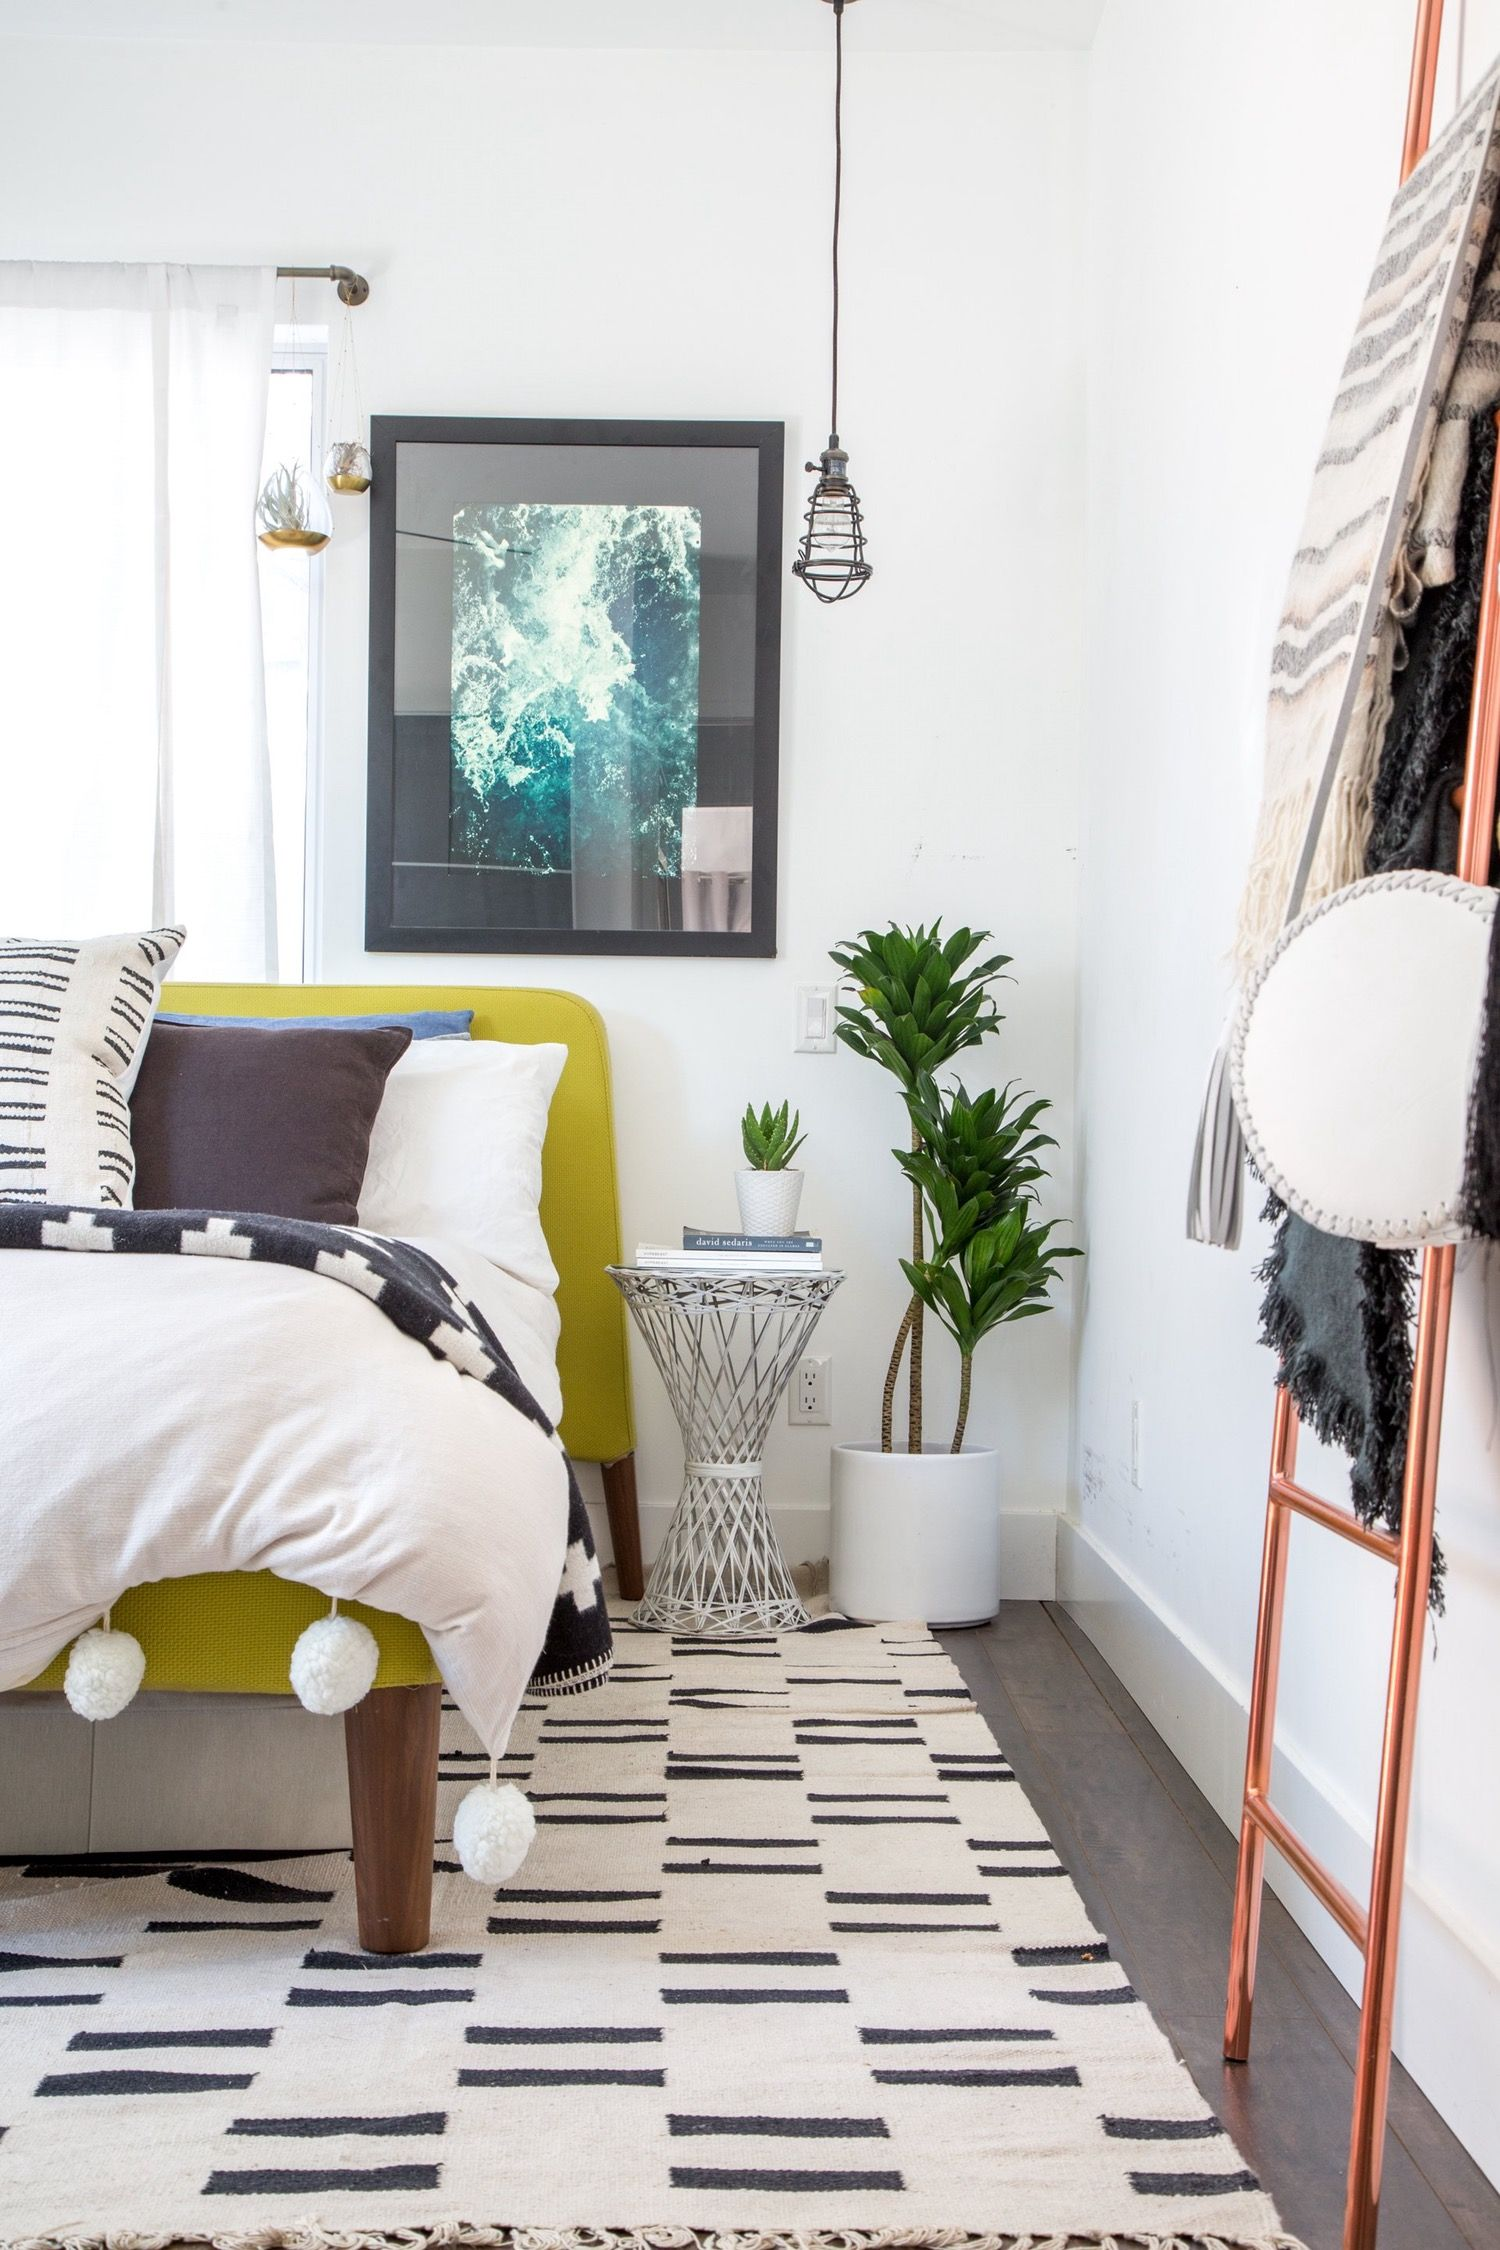 15 Smart Bedroom Styling Tips I ve Learned From House Tours